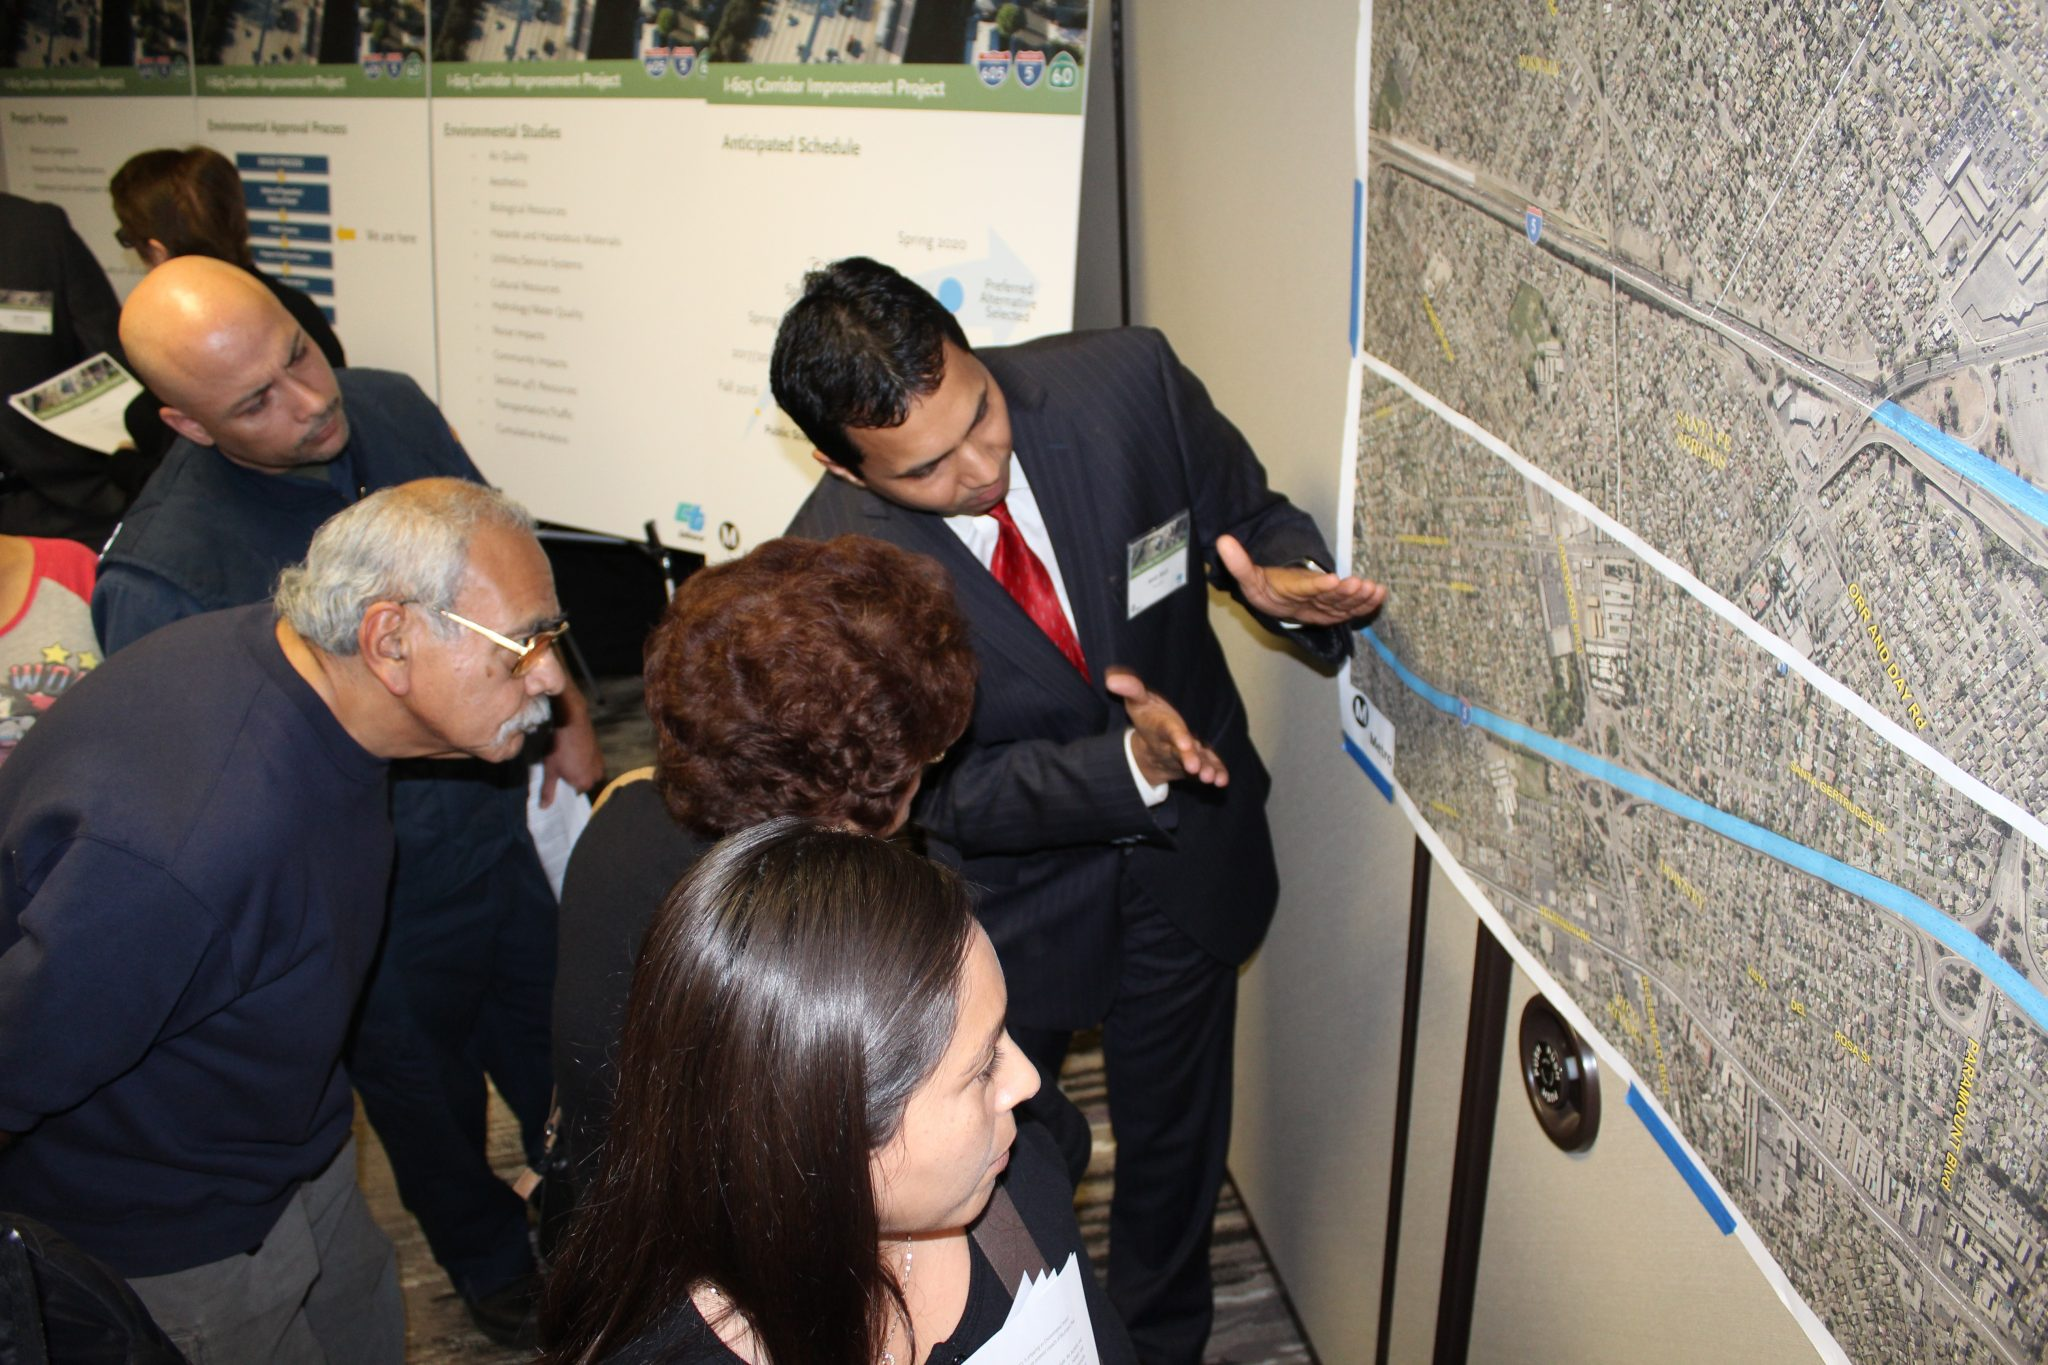 Upcoming community meetings for I-605 Corridor Improvement Project